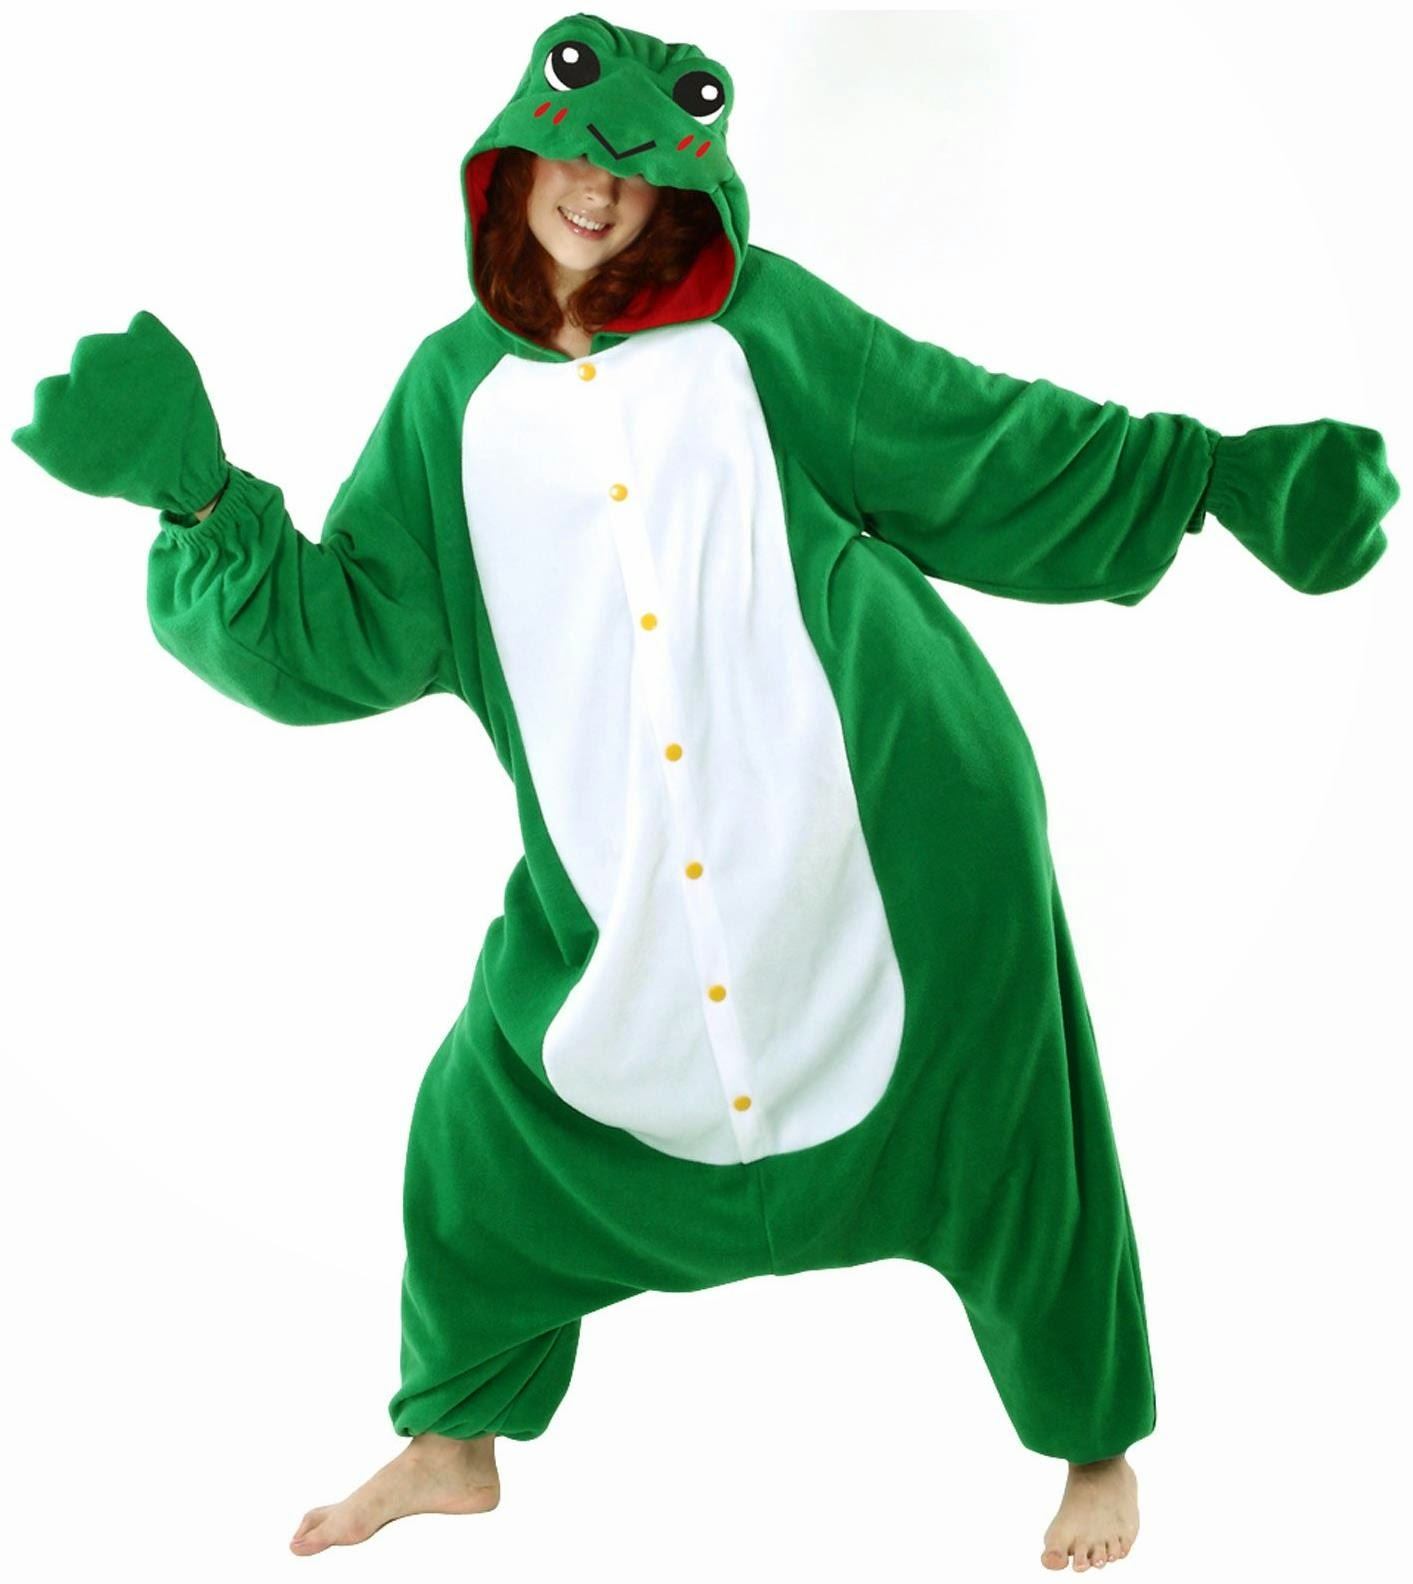 http://www.partybell.com/p-29684-bcozy-frog-adult-costume.aspx?utm_source=Blog&utm_medium=Social&utm_campaign=International-joke-day-costume-ideas